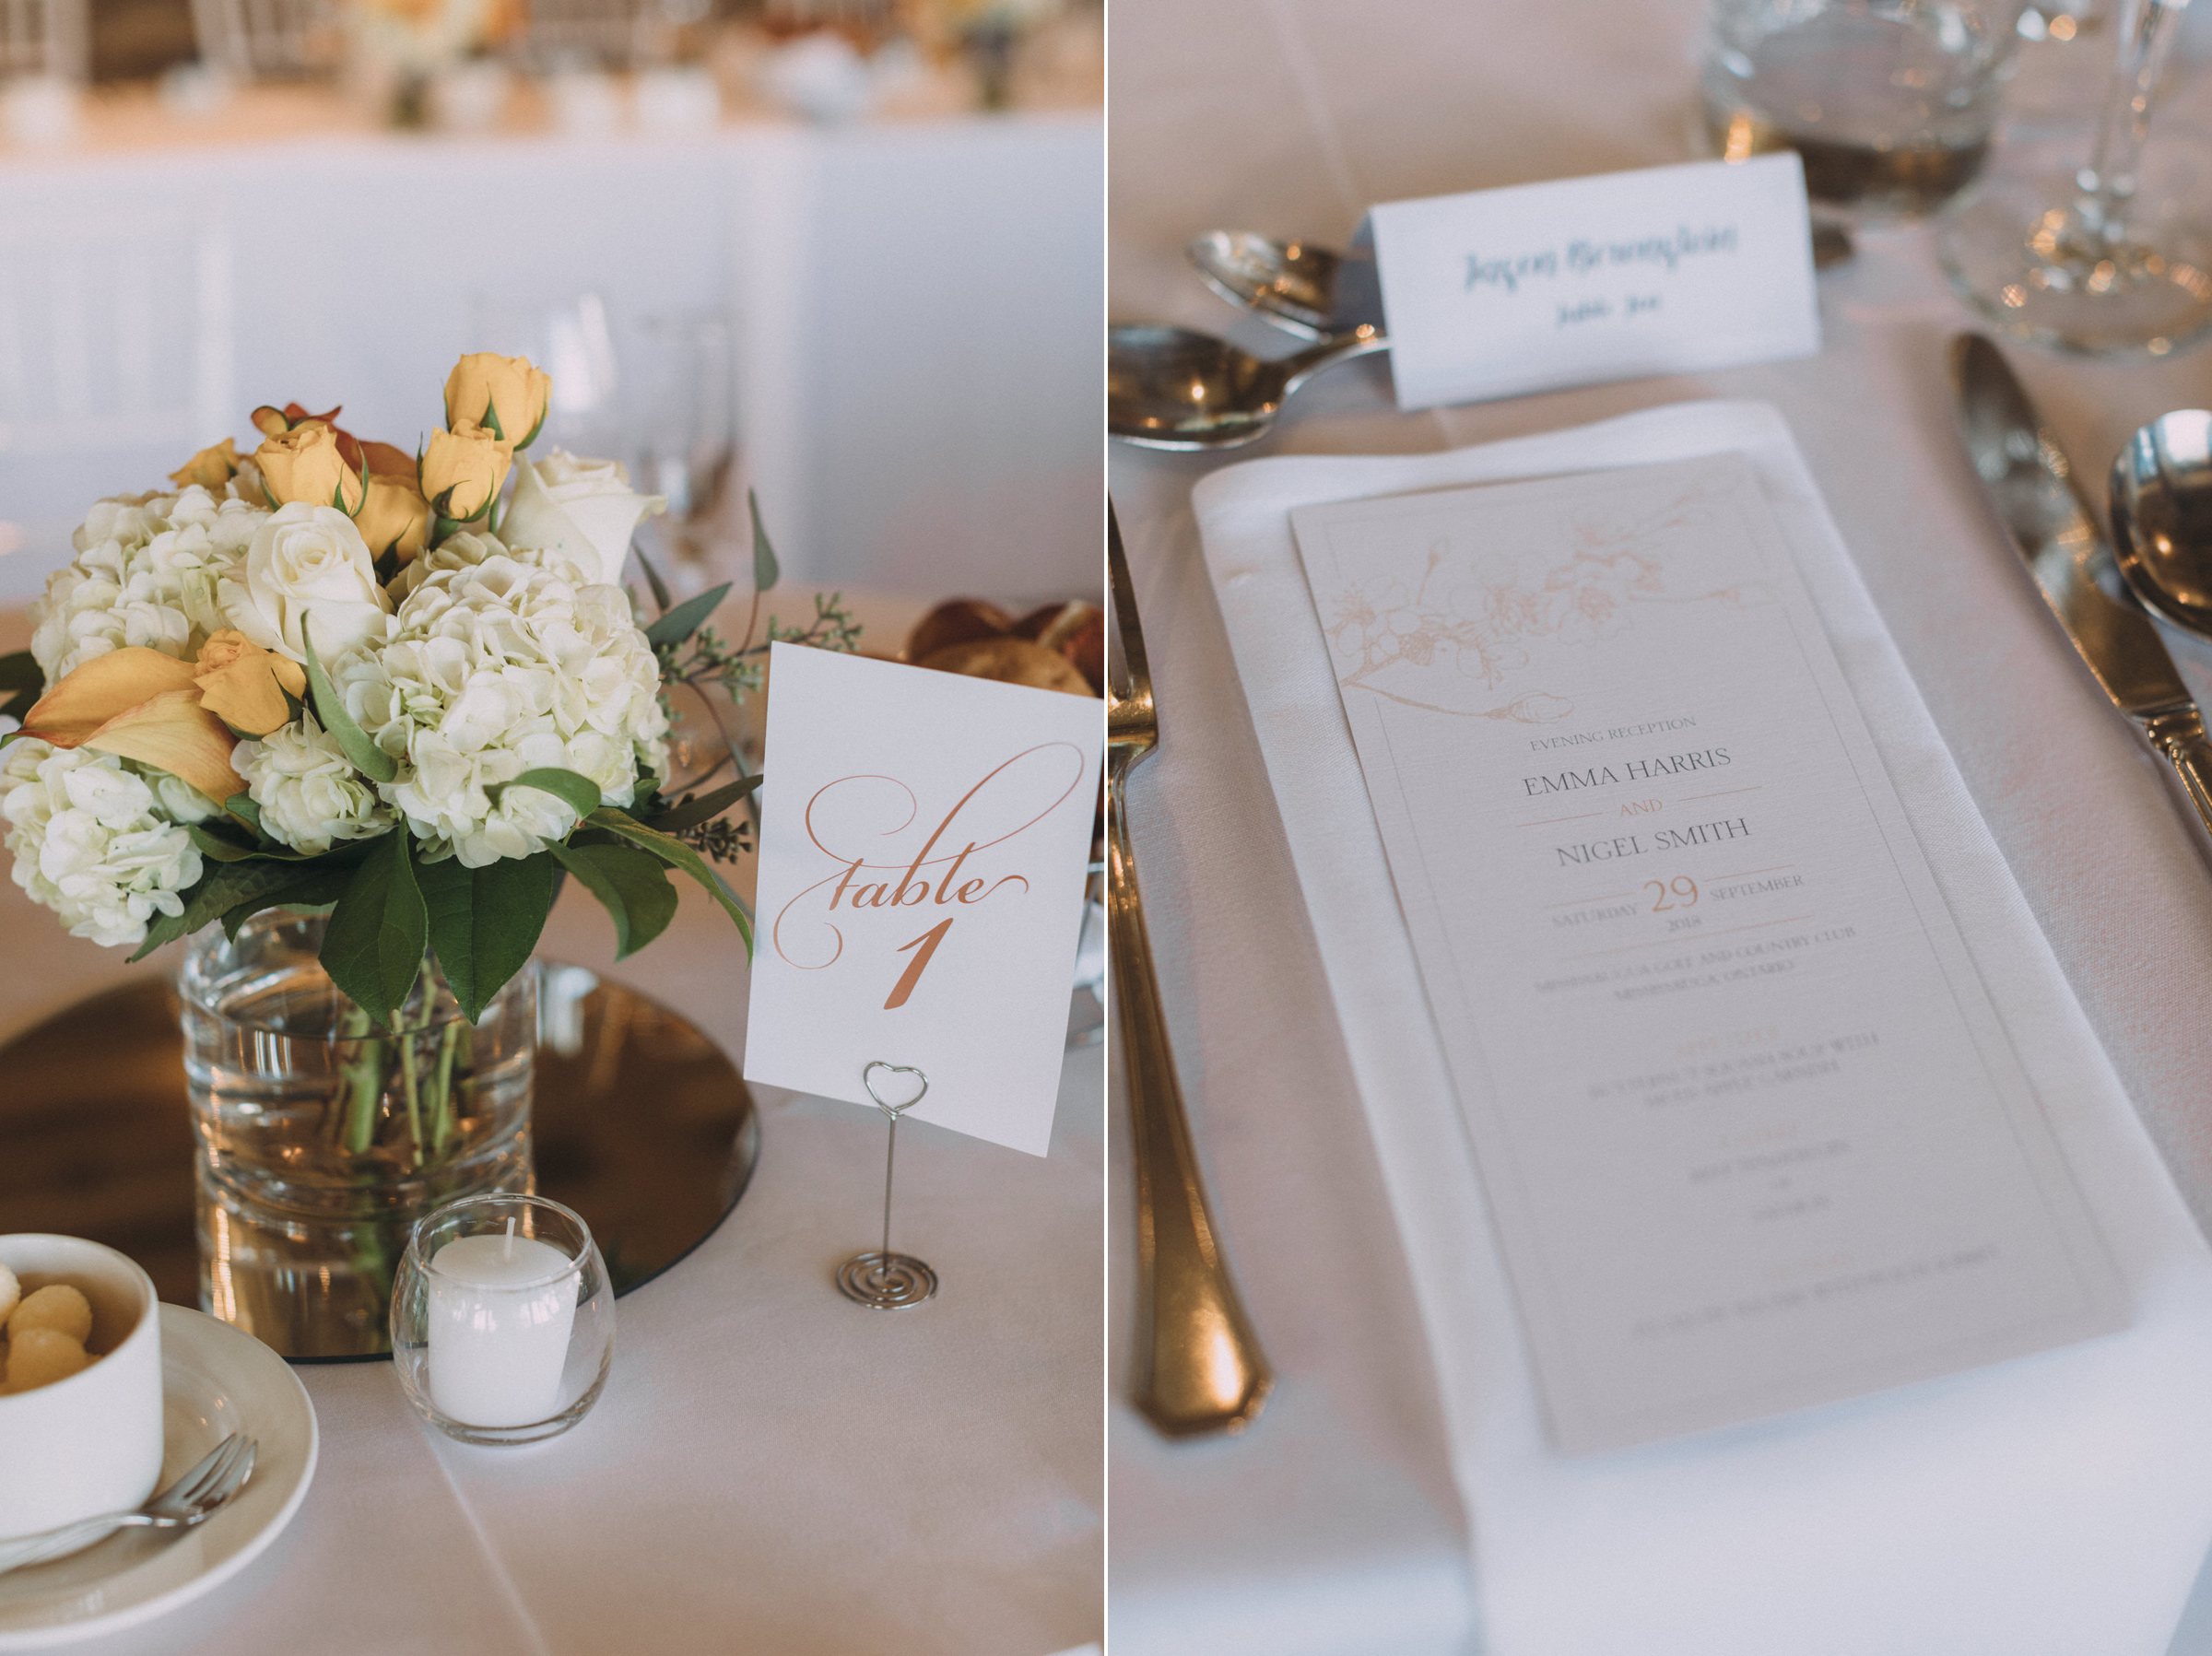 Mississaugua-Golf-and-Country-Club-wedding-photography-Emma-and-Nigel-by-Sam-Wong-of-Visual-Cravings_44.jpg